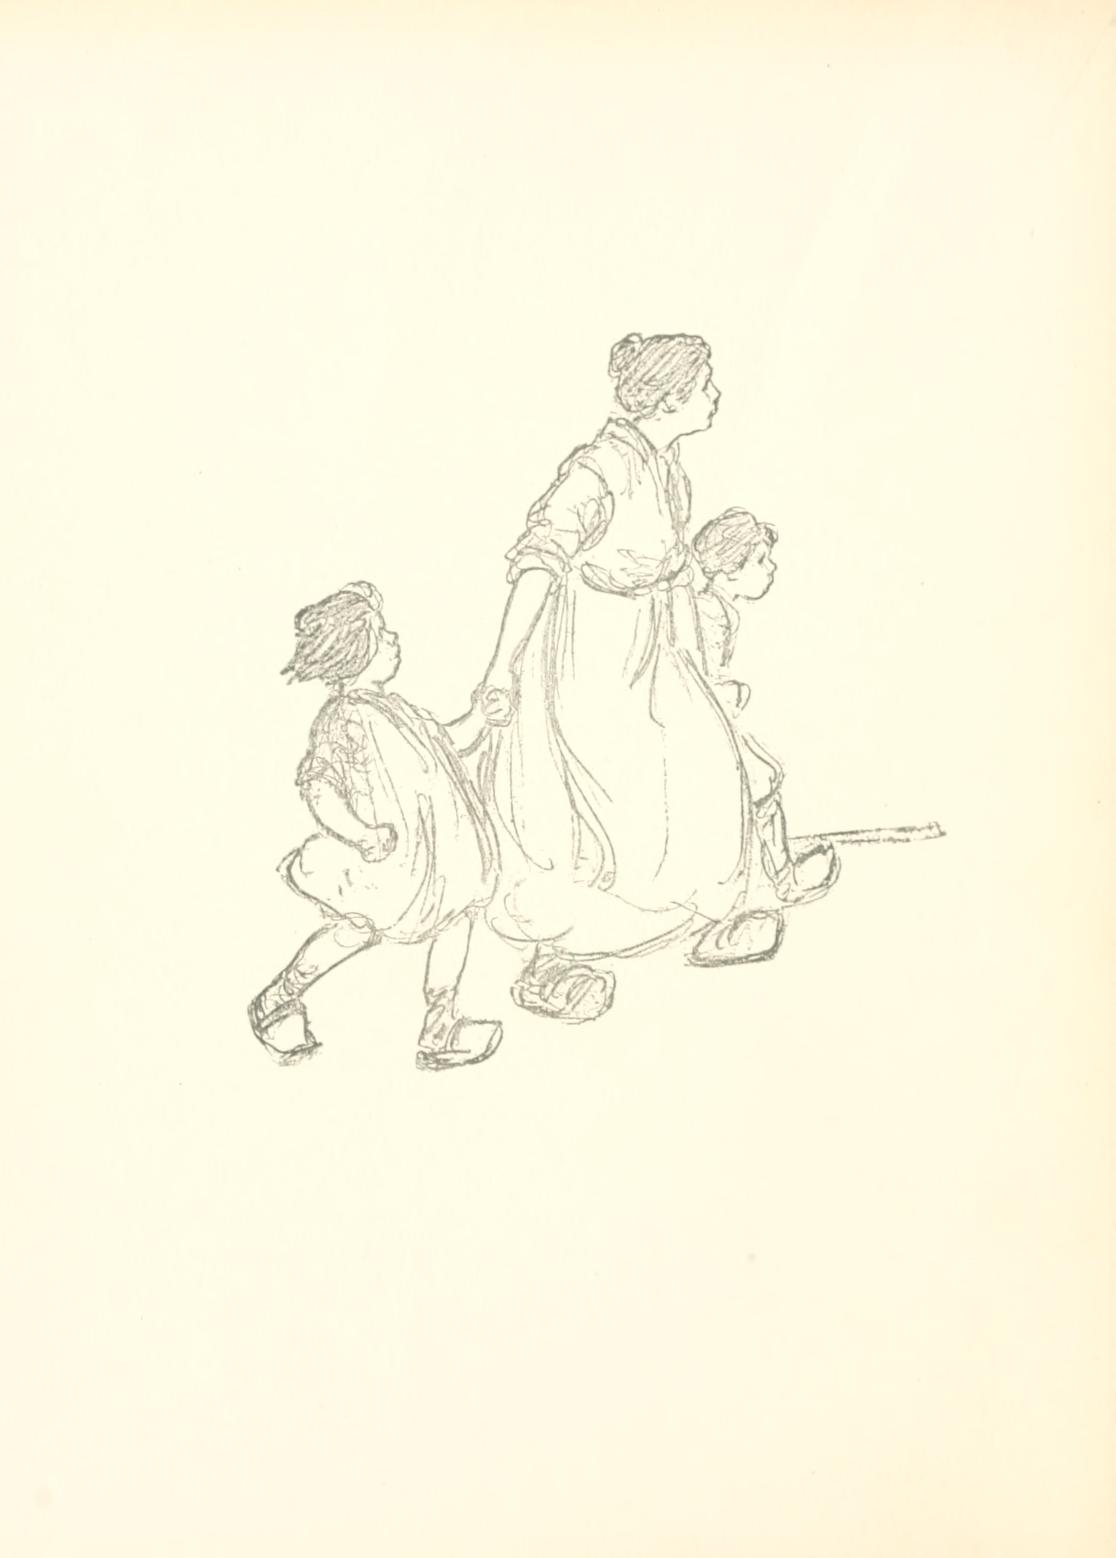 - Perkins, Lucy Fitch. The Belgian Twins. Boston: Houghton Mifflin Company. 1917. Available on Internet Archive here. The author wrote a whole series of books about twins from around the world between 1911 and 1934. Evidently, she interviewed someone that had grown up in each country to gain understanding of children's lives there. She also incorporated aspects of history; World War I was woven into this book about Belgium published in 1917 and the book about French twins published in 1918. Many of the books are available on Internet Archive. The sketch type illustrations are the aspect of these books I enjoyed the most.